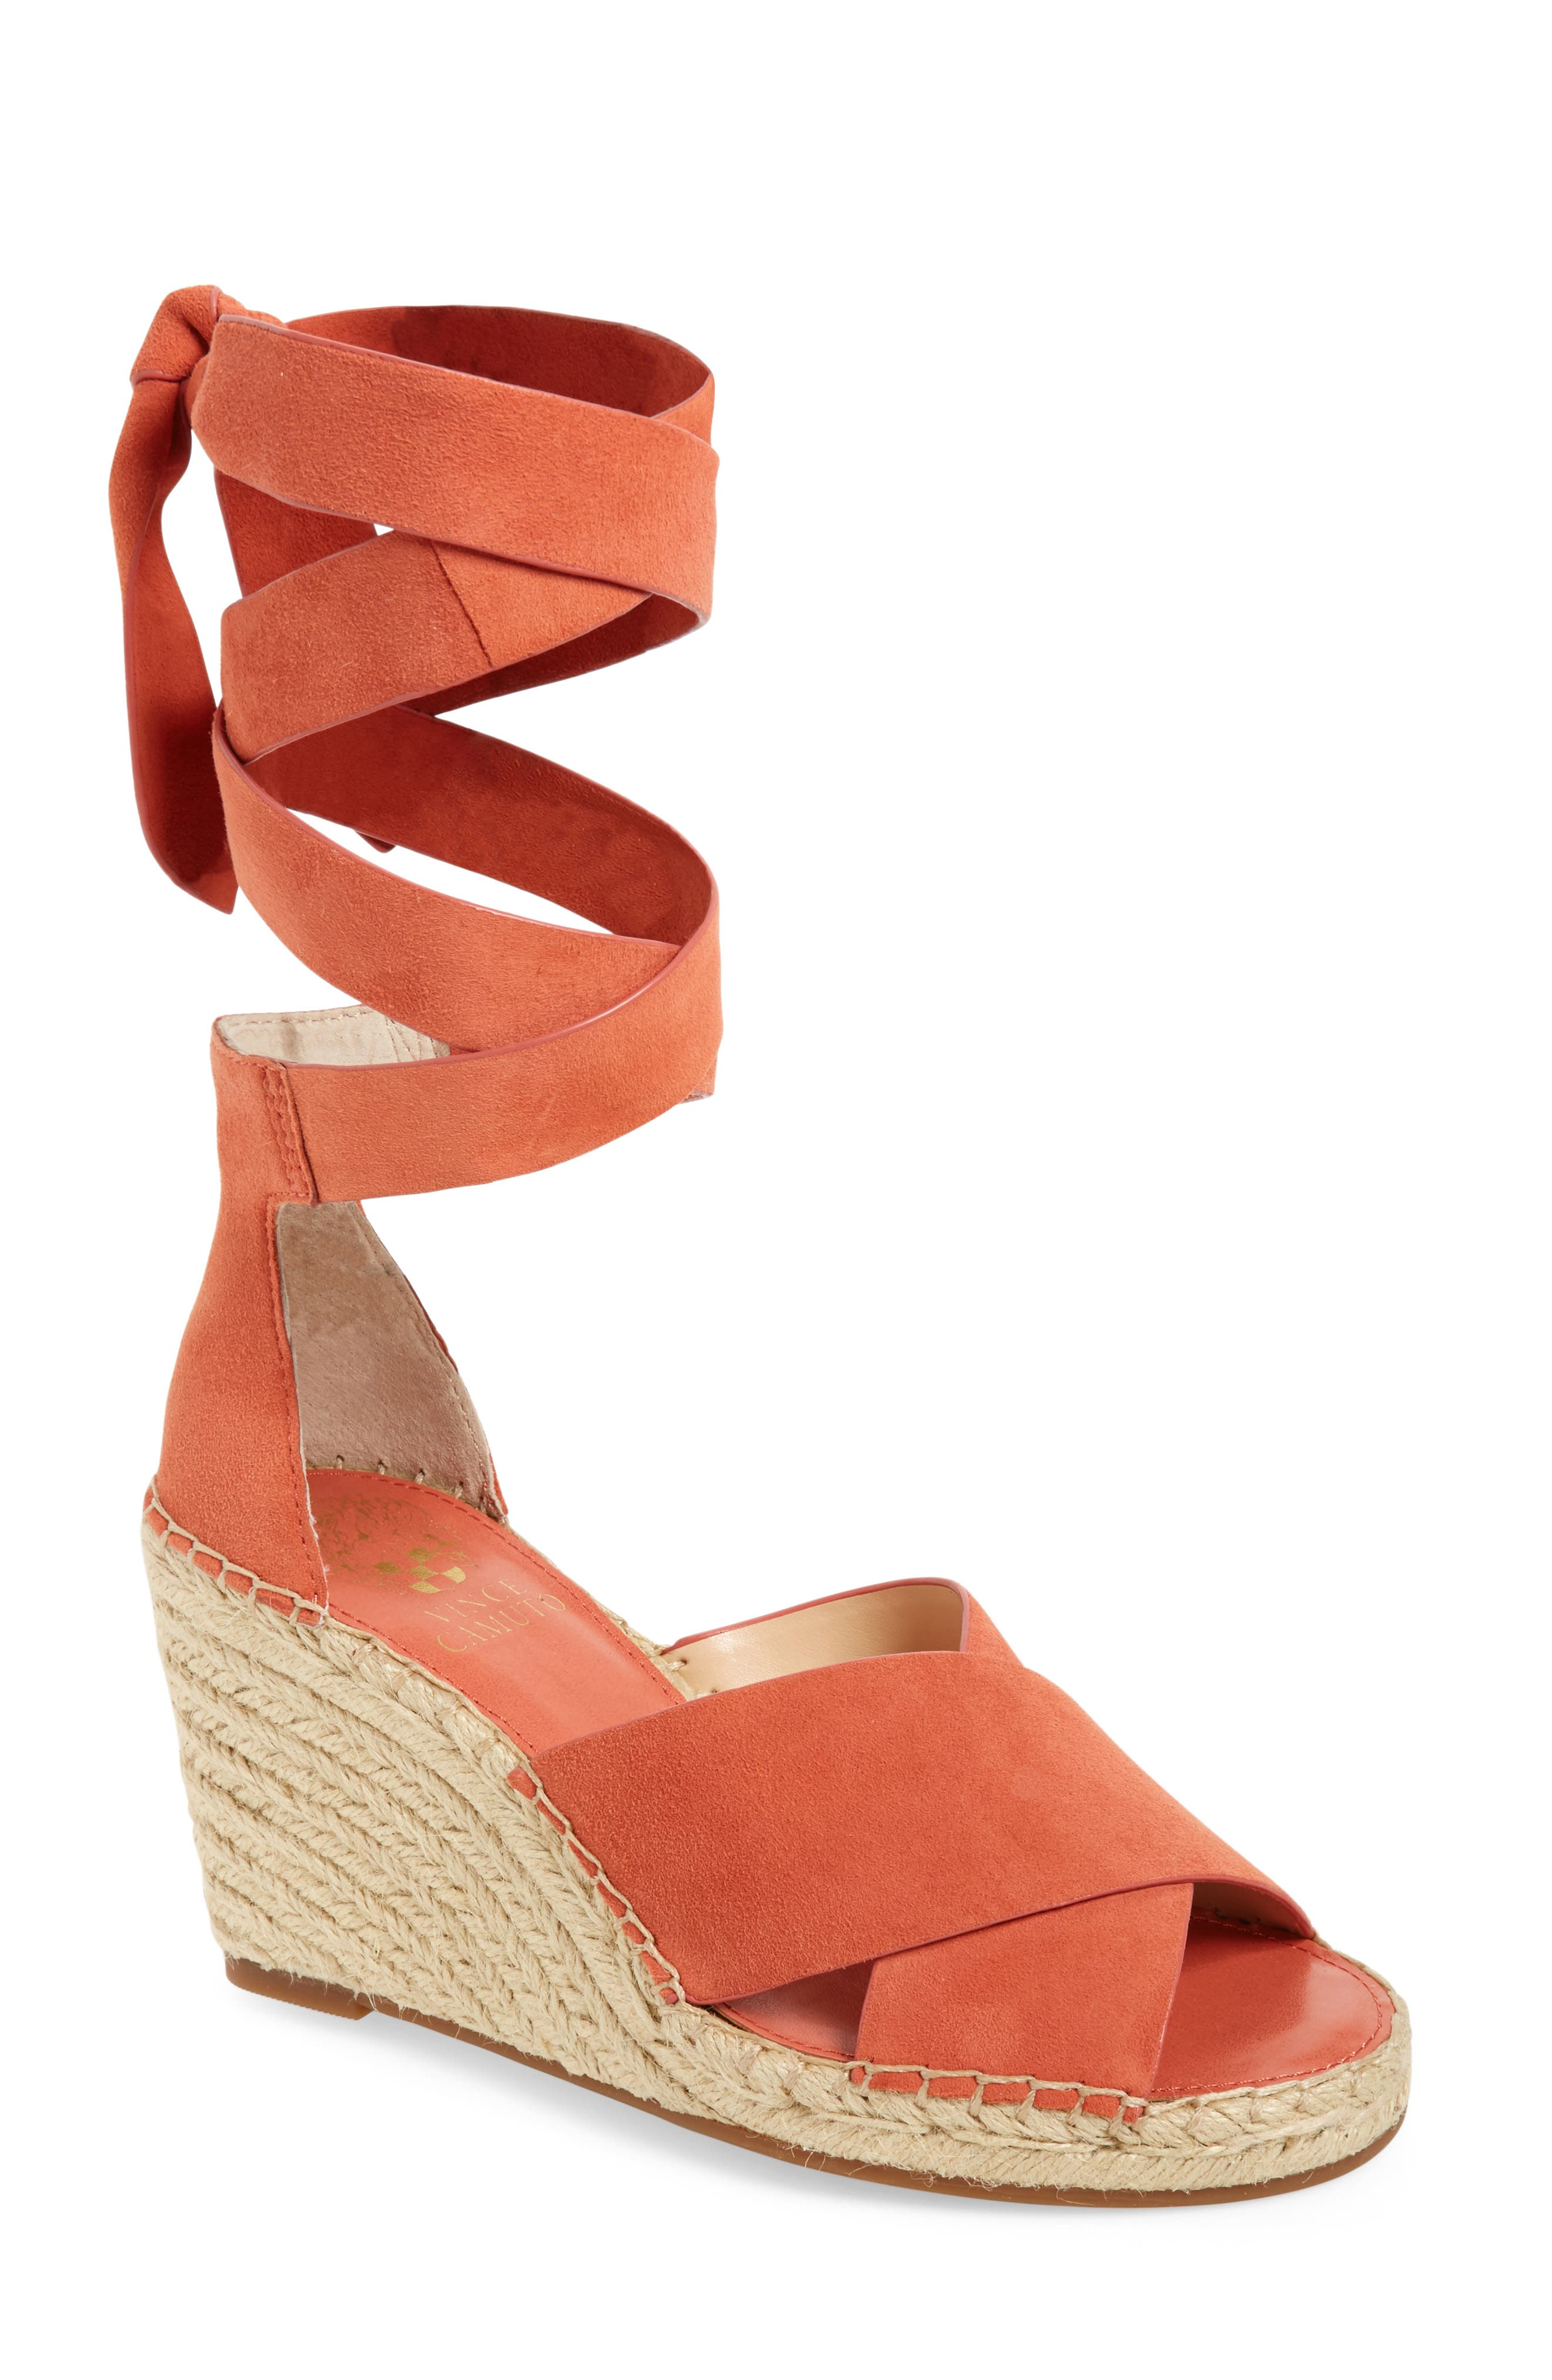 Leddy Wedge Sandal,                             Main thumbnail 1, color,                             Melon Daiquiri Suede